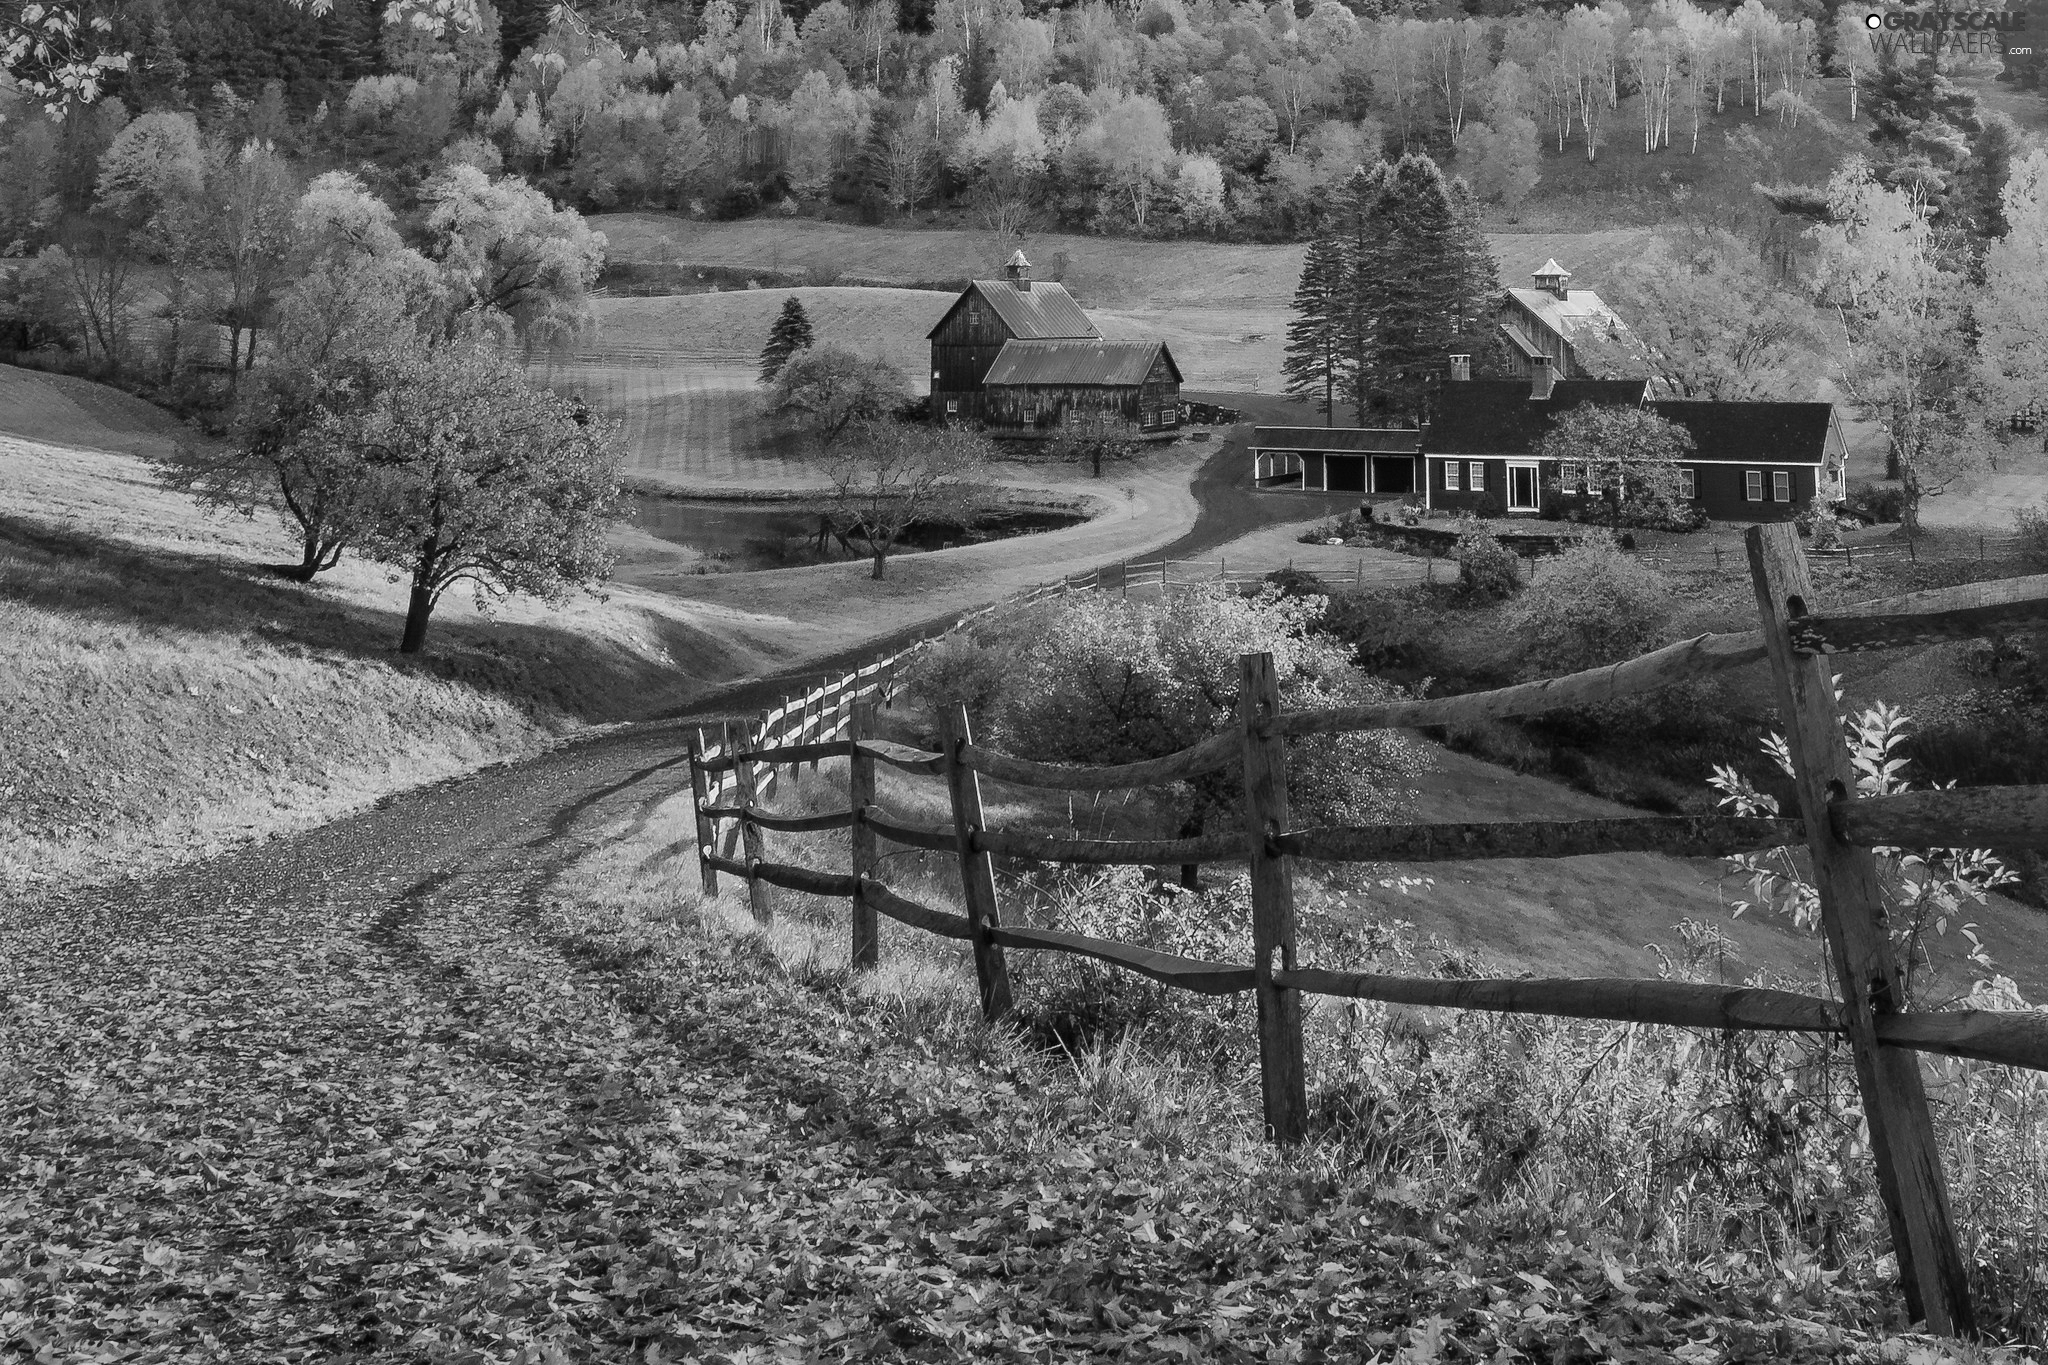 fallen, trees, State of Vermont, fence, The United States, Pomfret, Way, Leaf, Pond - car, autumn, viewes, New England, Houses